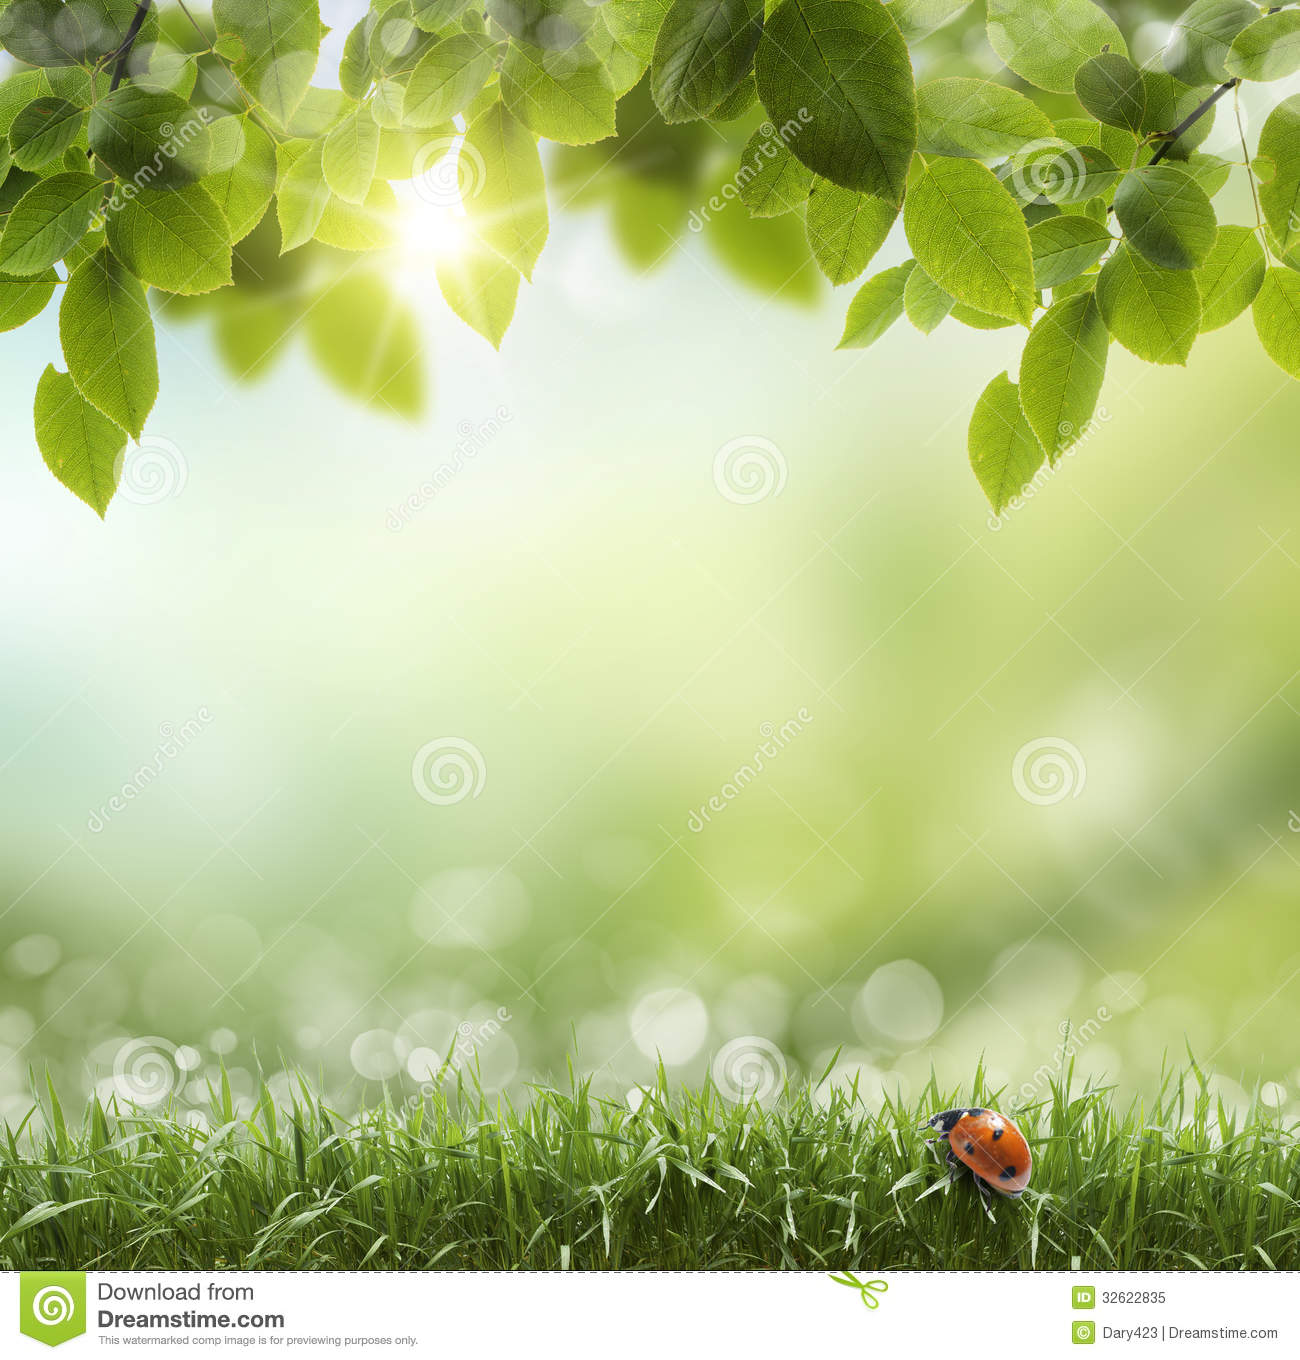 Free Nature Background Images Natural green background with